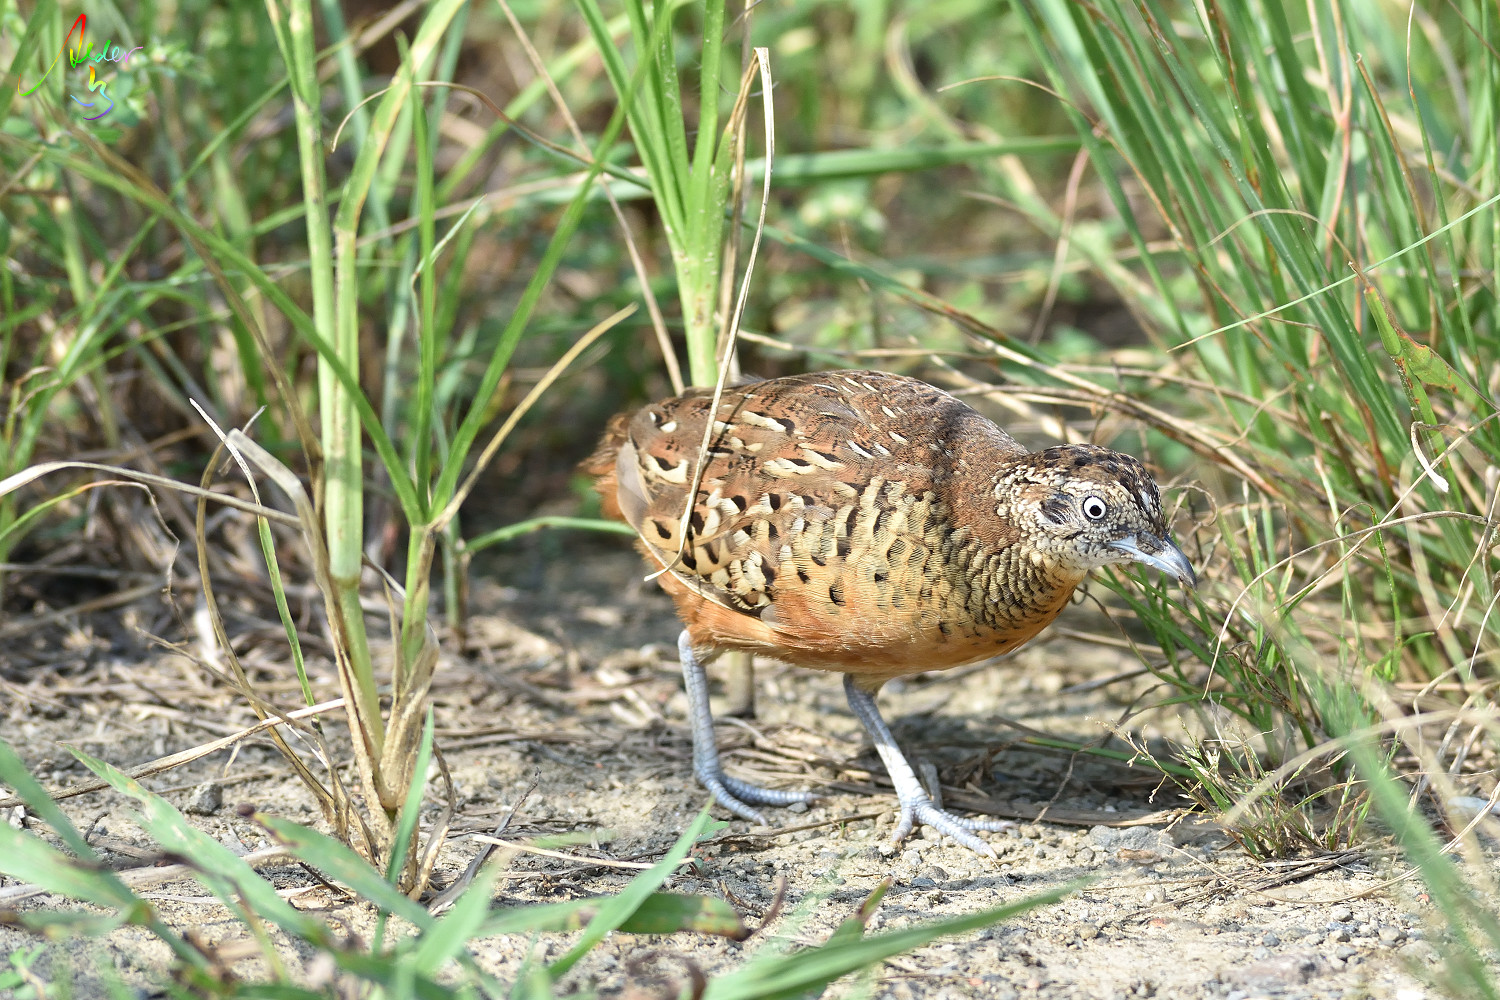 Barred_Butonquail_9303